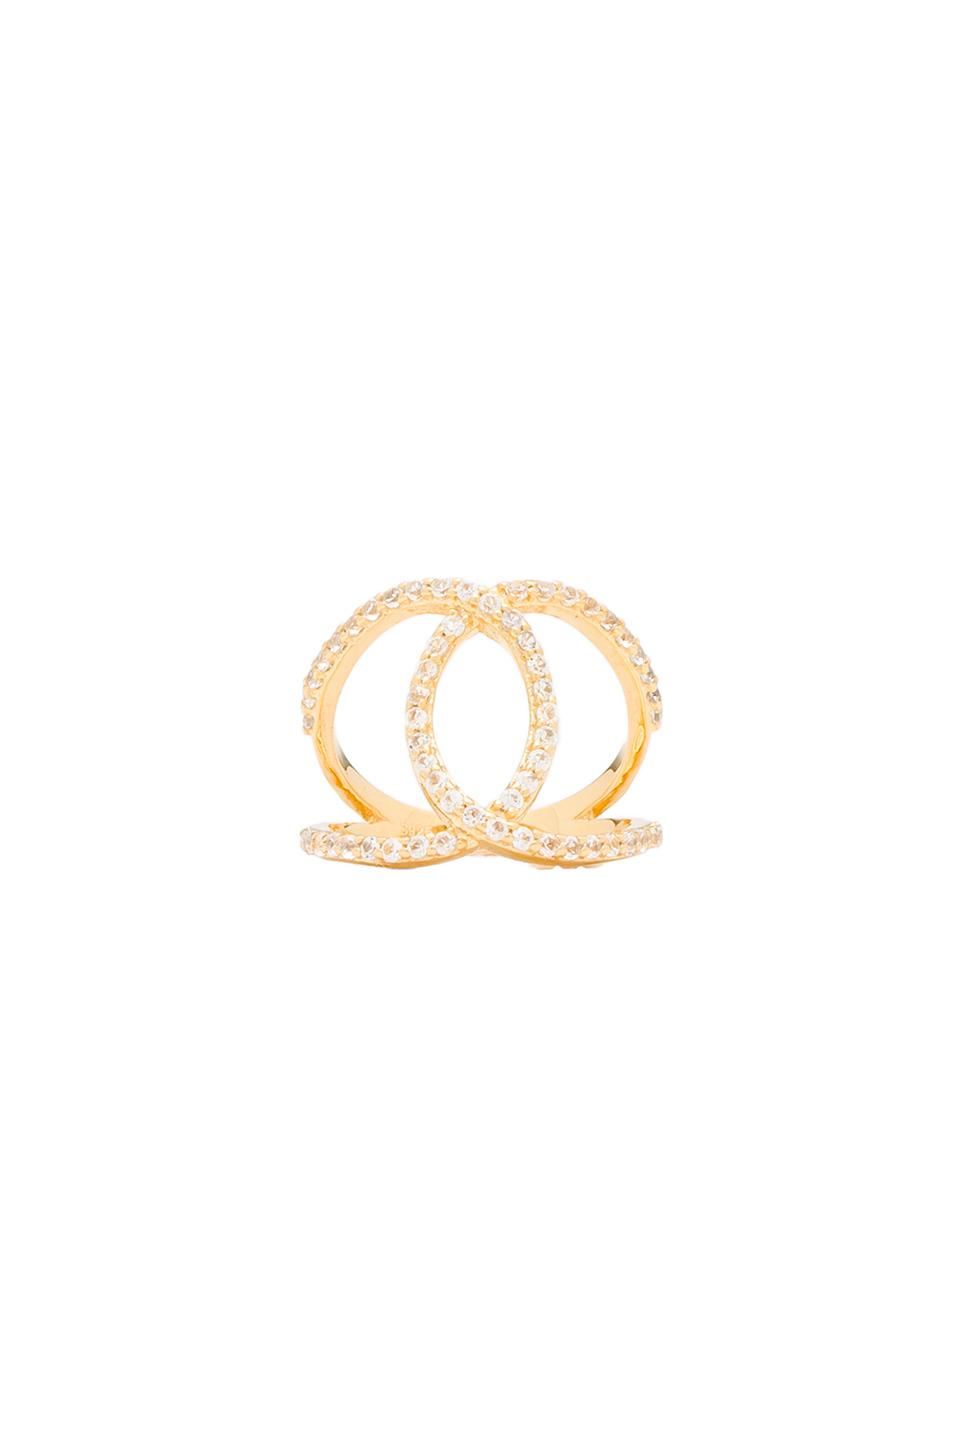 Alex Mika KoKo Ring in Gold